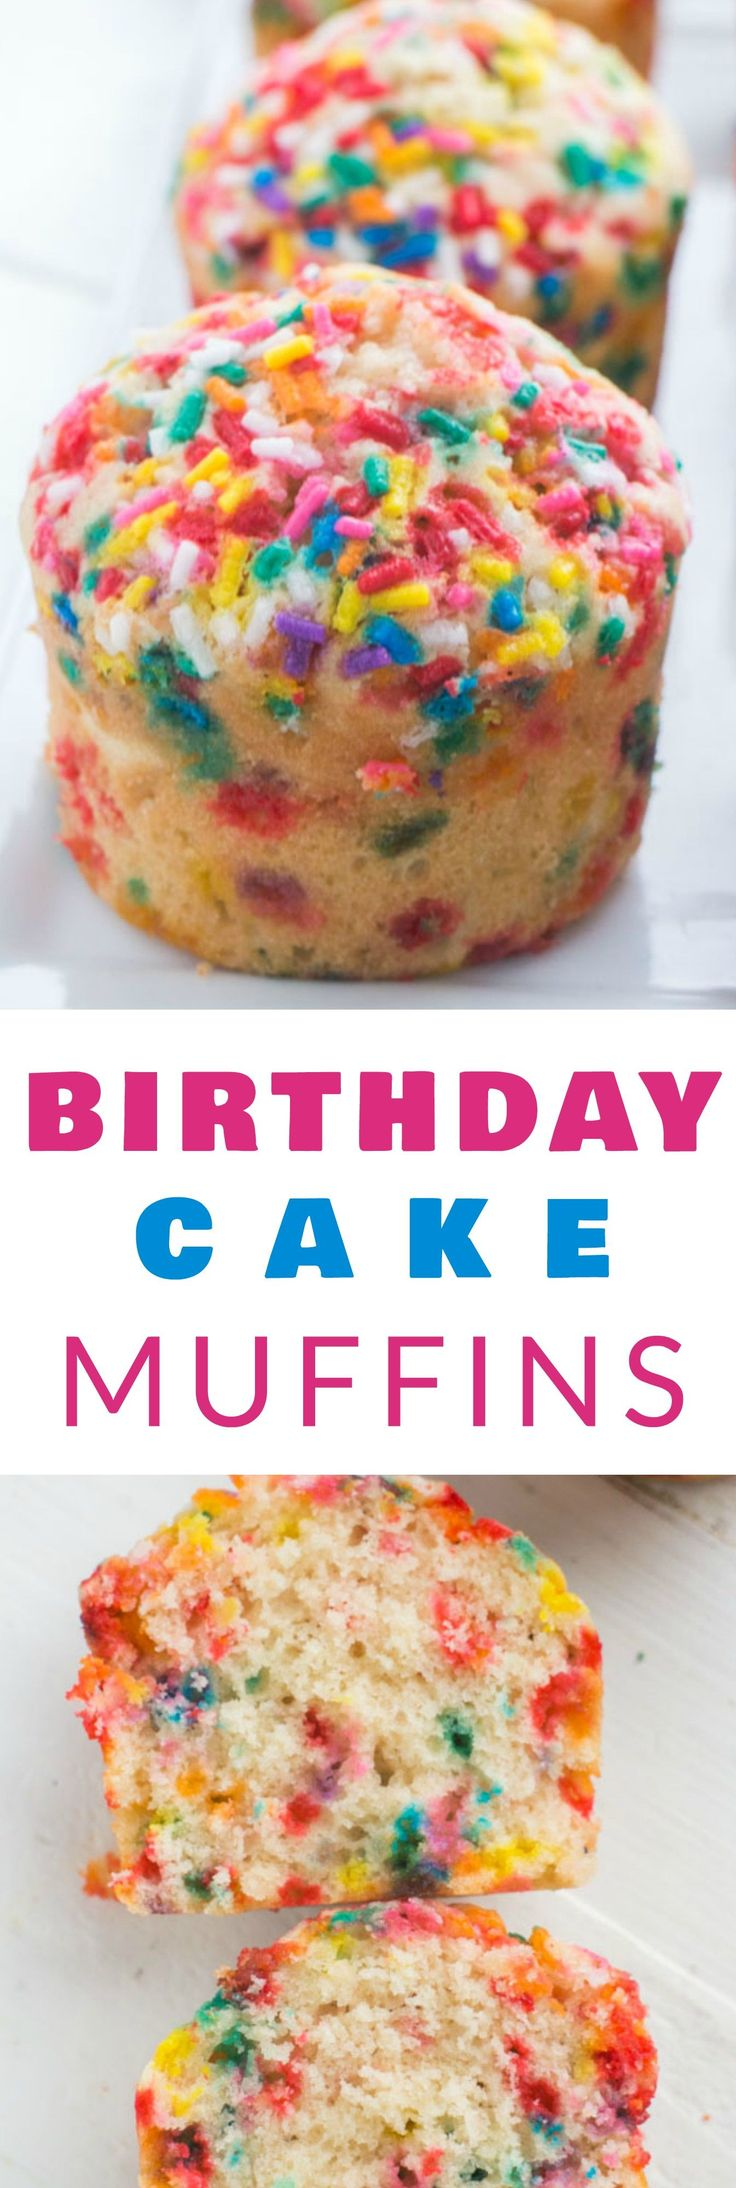 Fluffy Birthday Cake Muffins With Sprinkles That Taste Just Like Cake This Easy Recipe Is